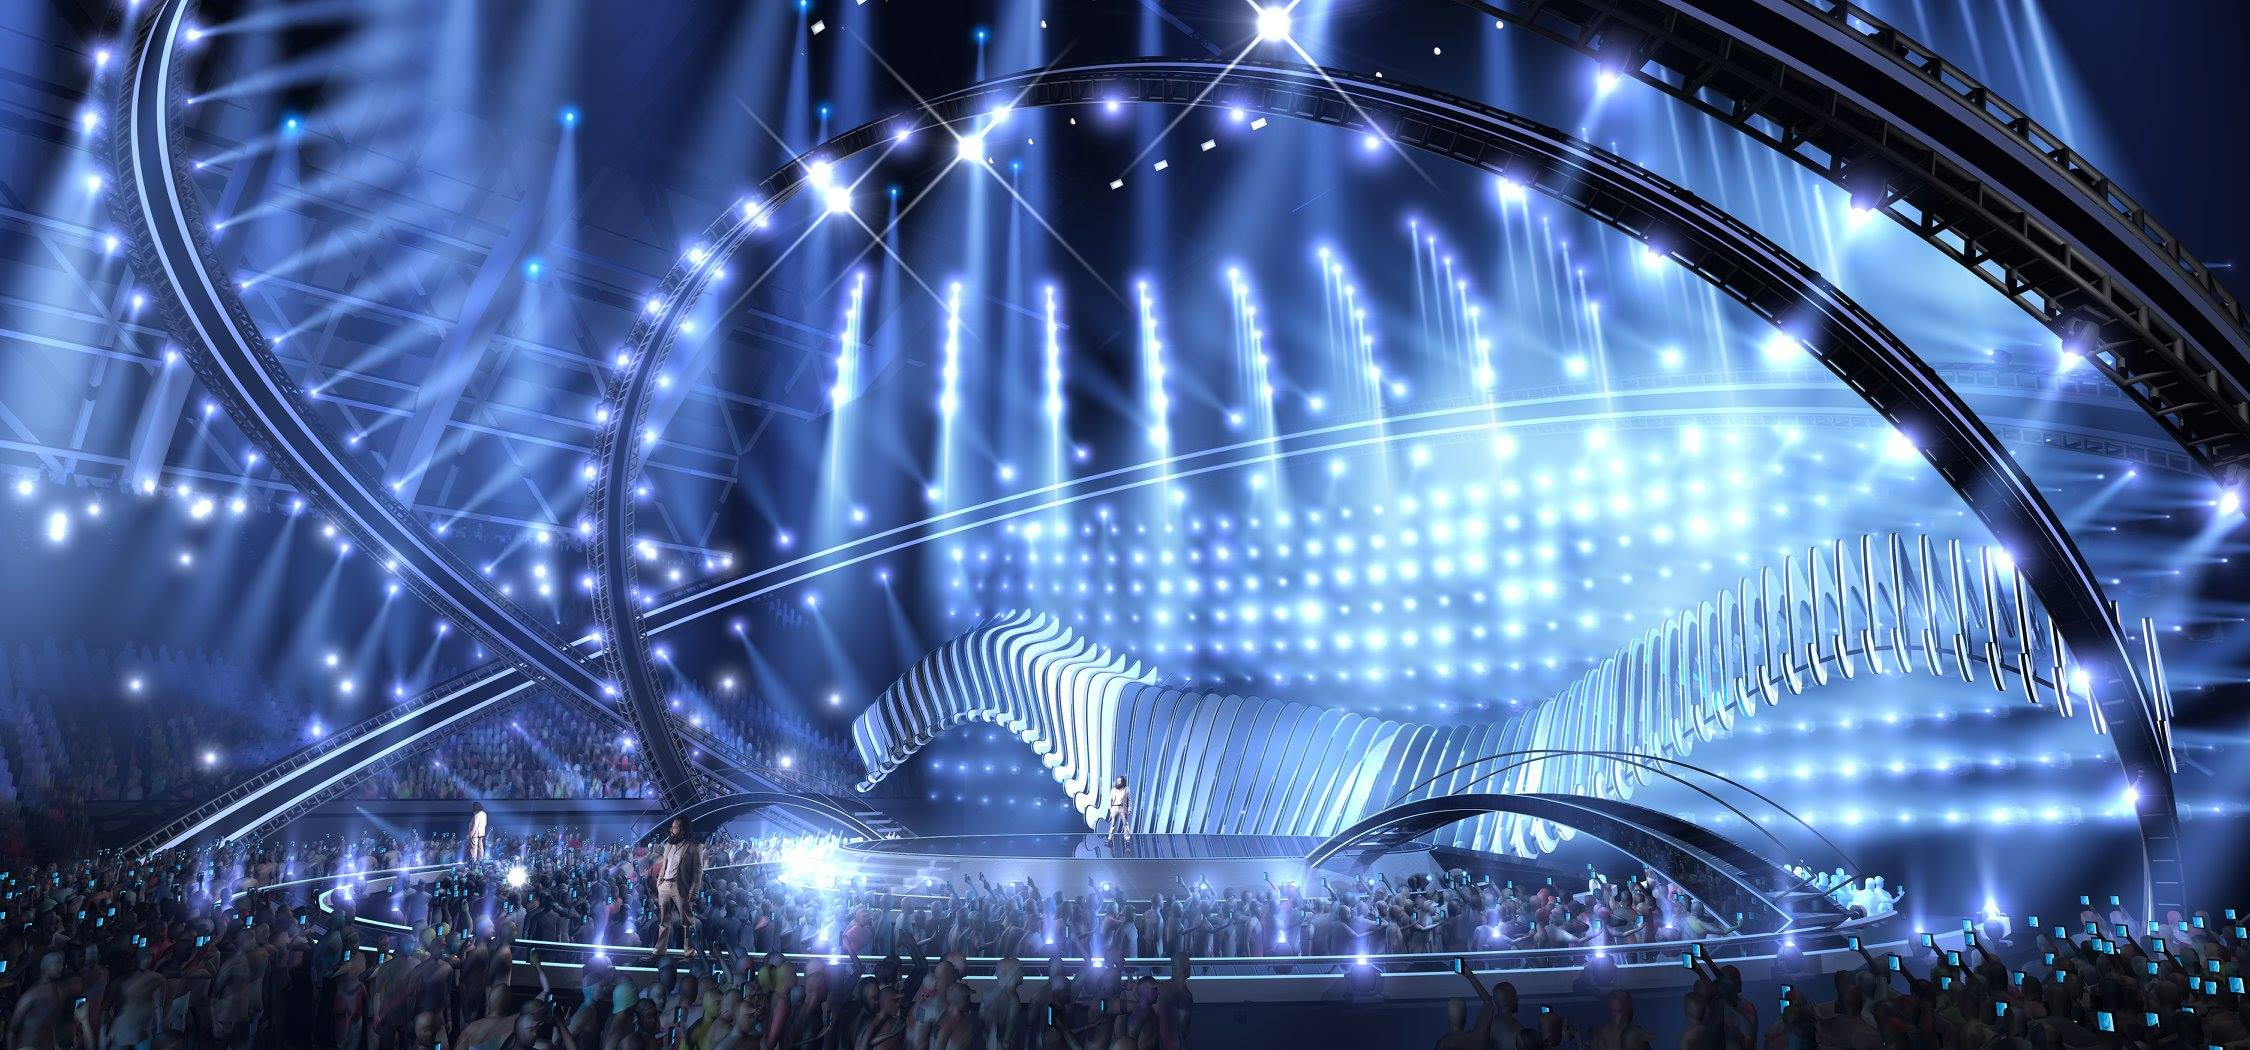 Eurovision Song Contest 2018 - ISRAEL WINS !!! - Page 2 25182286_10155992277873007_6115285151448588143_o